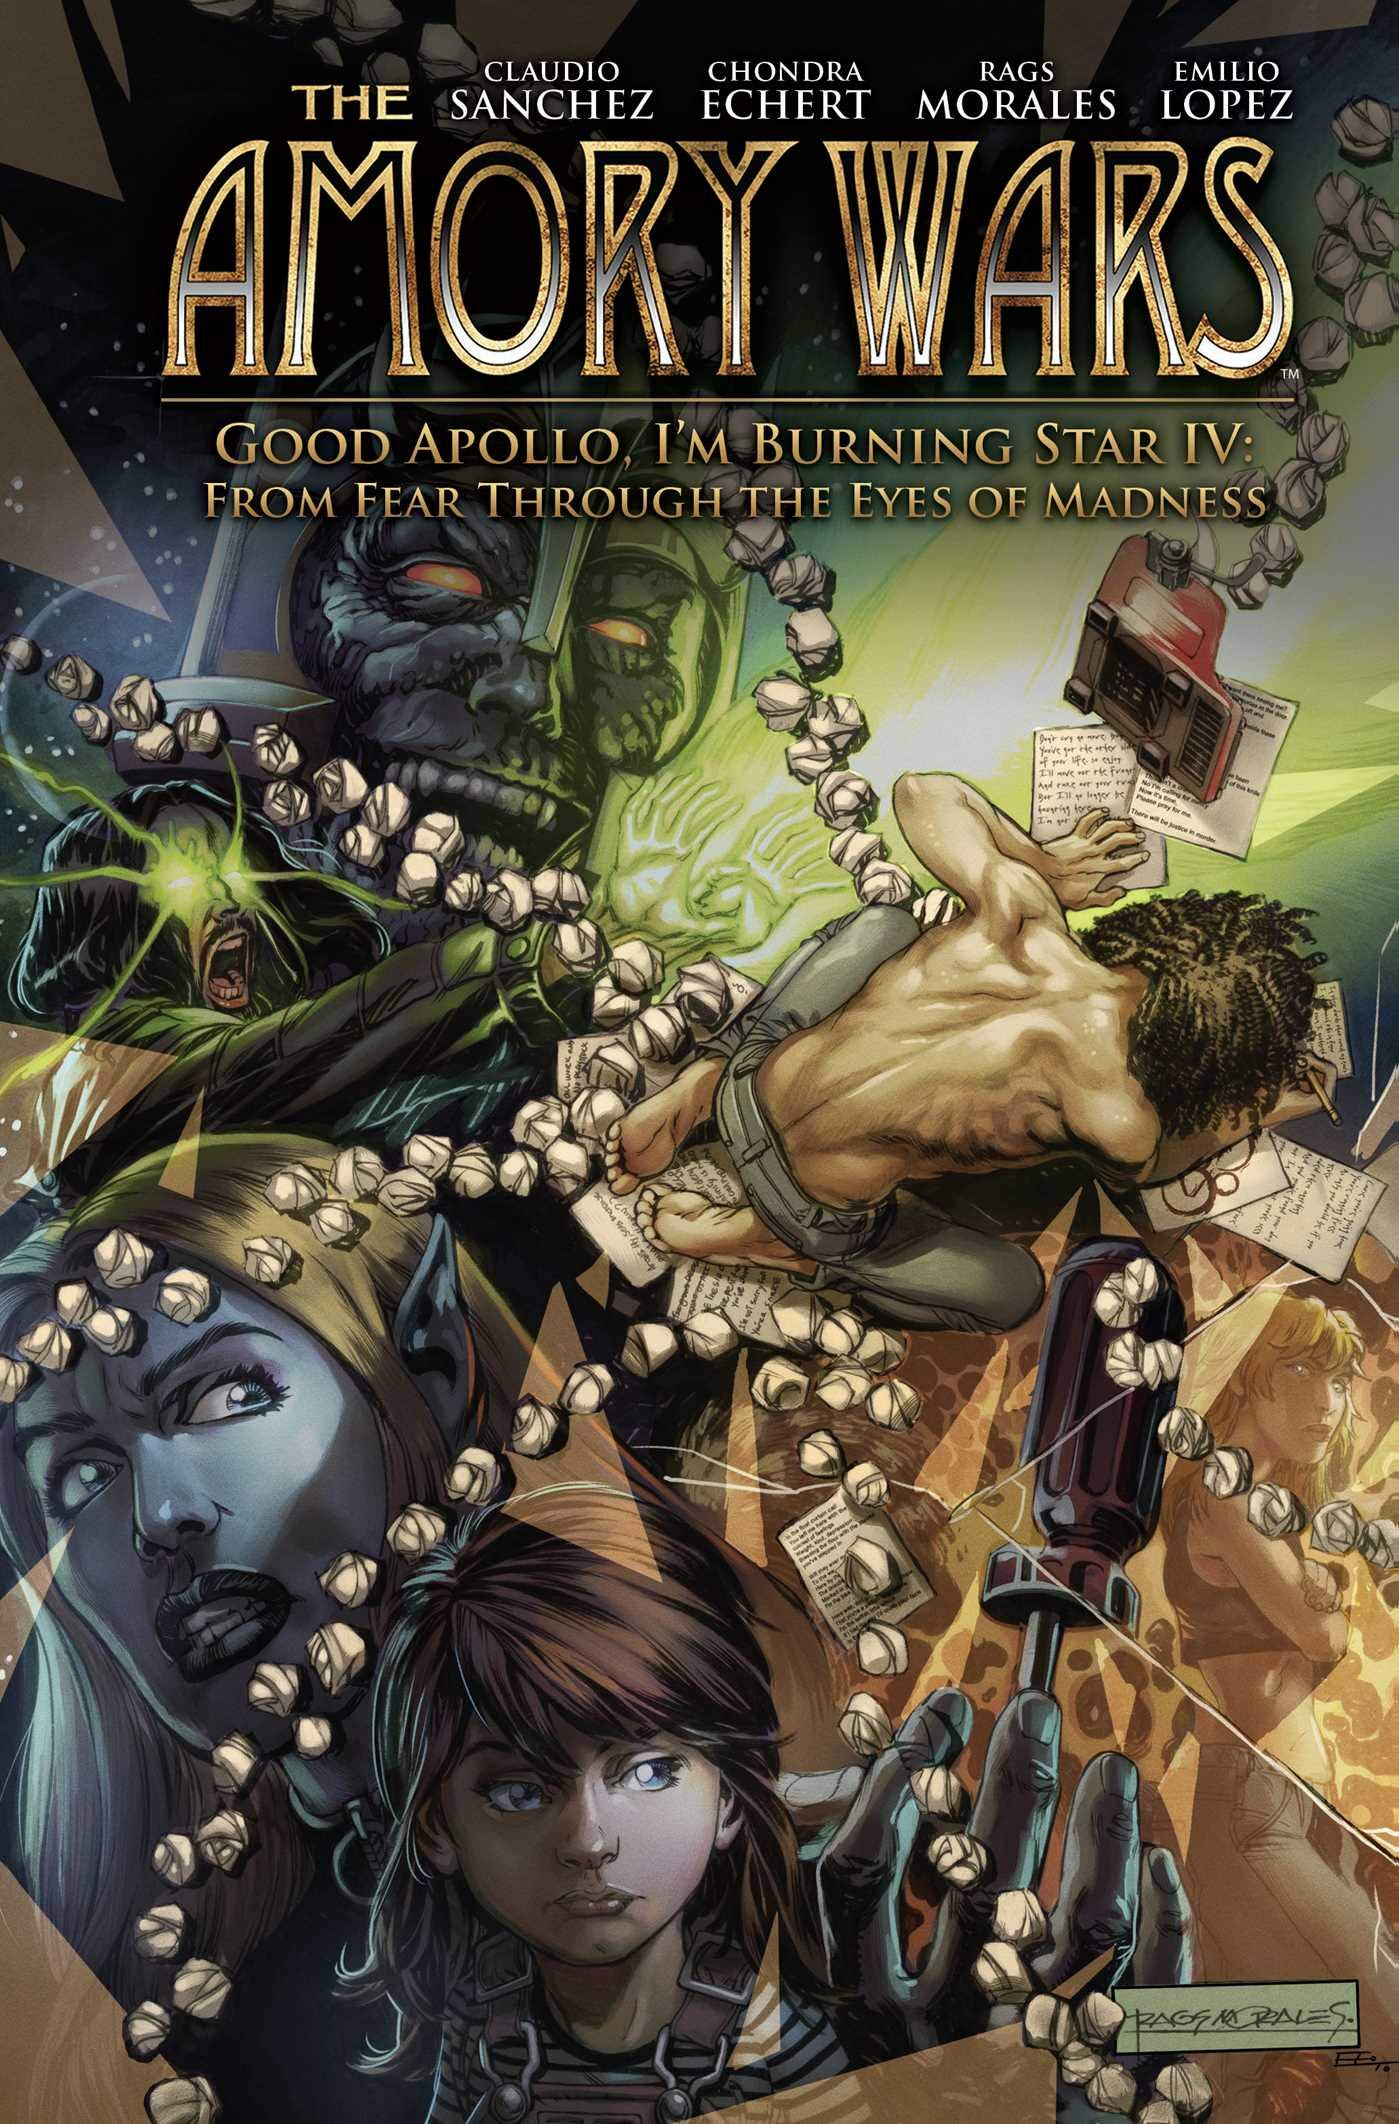 The Amory Wars: Good Apollo, I'm Burning Star IV Ultimate Edition by Boom! Studios